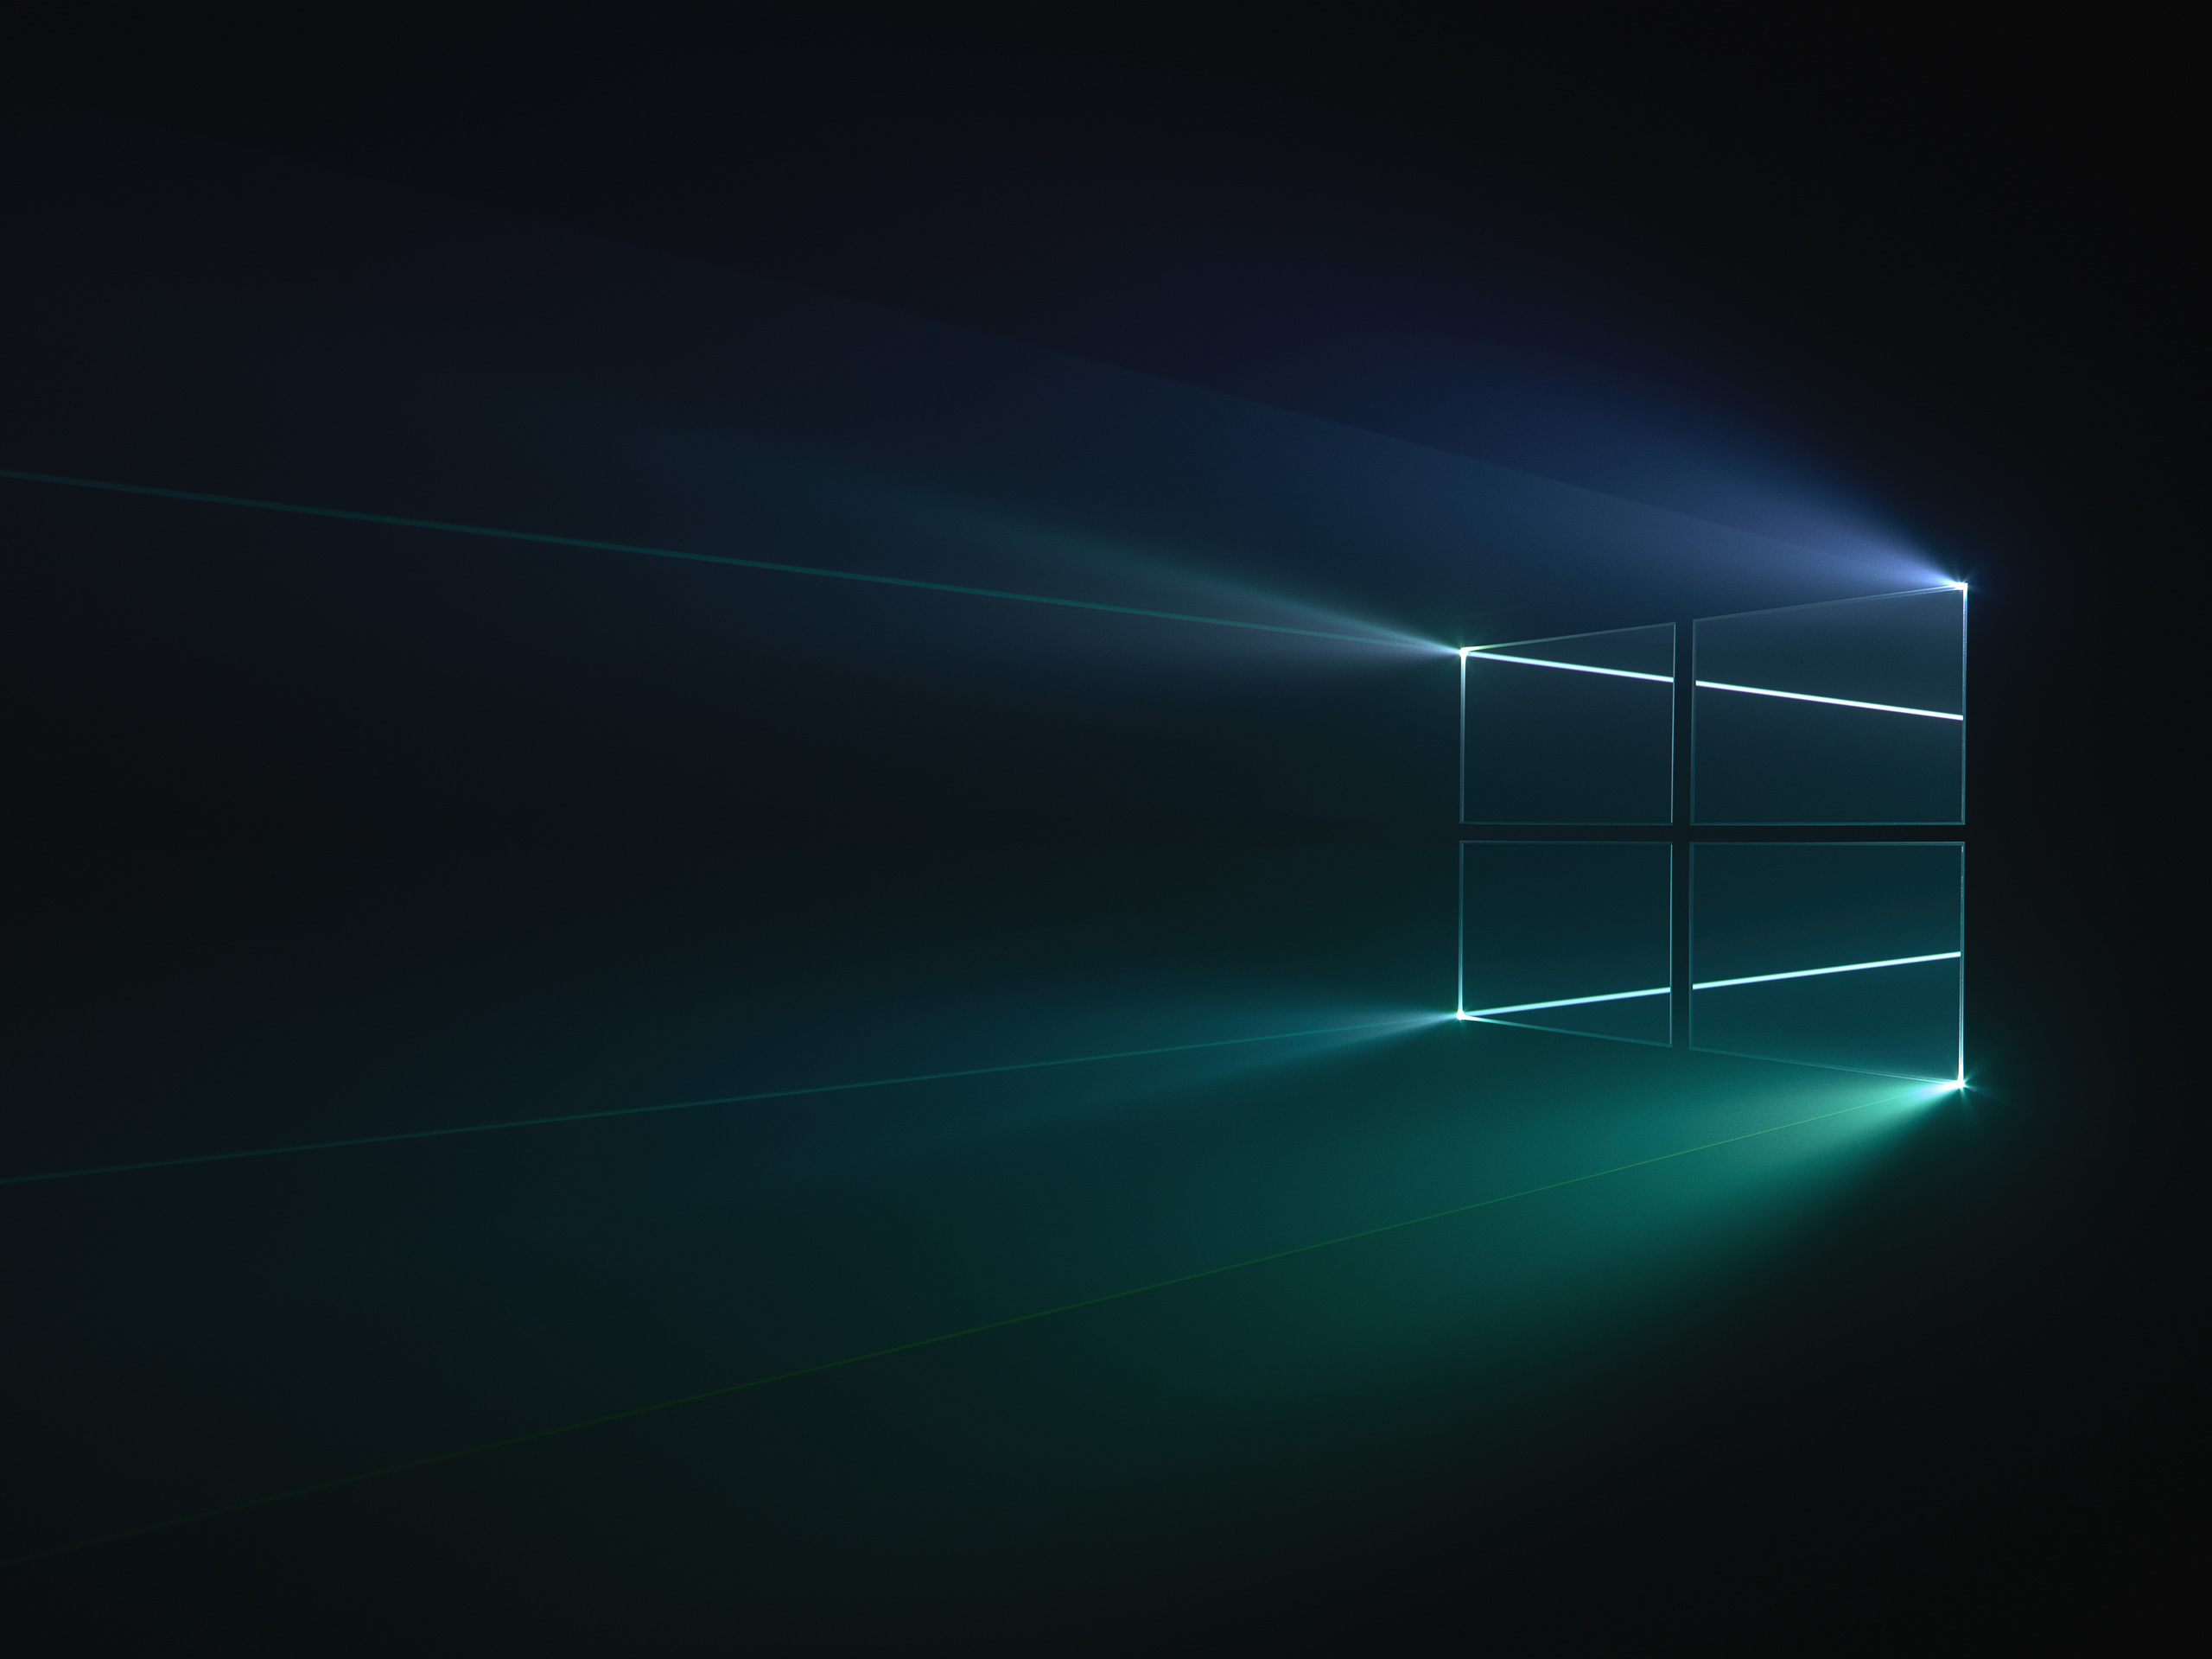 Wallpaper maker for windows 10 -  That Brought A Dark Moody Definition And A Distinctive Provocative Take It Gave The Windows Logo A Sense Of Mystery That S Powerful In Its Own Way